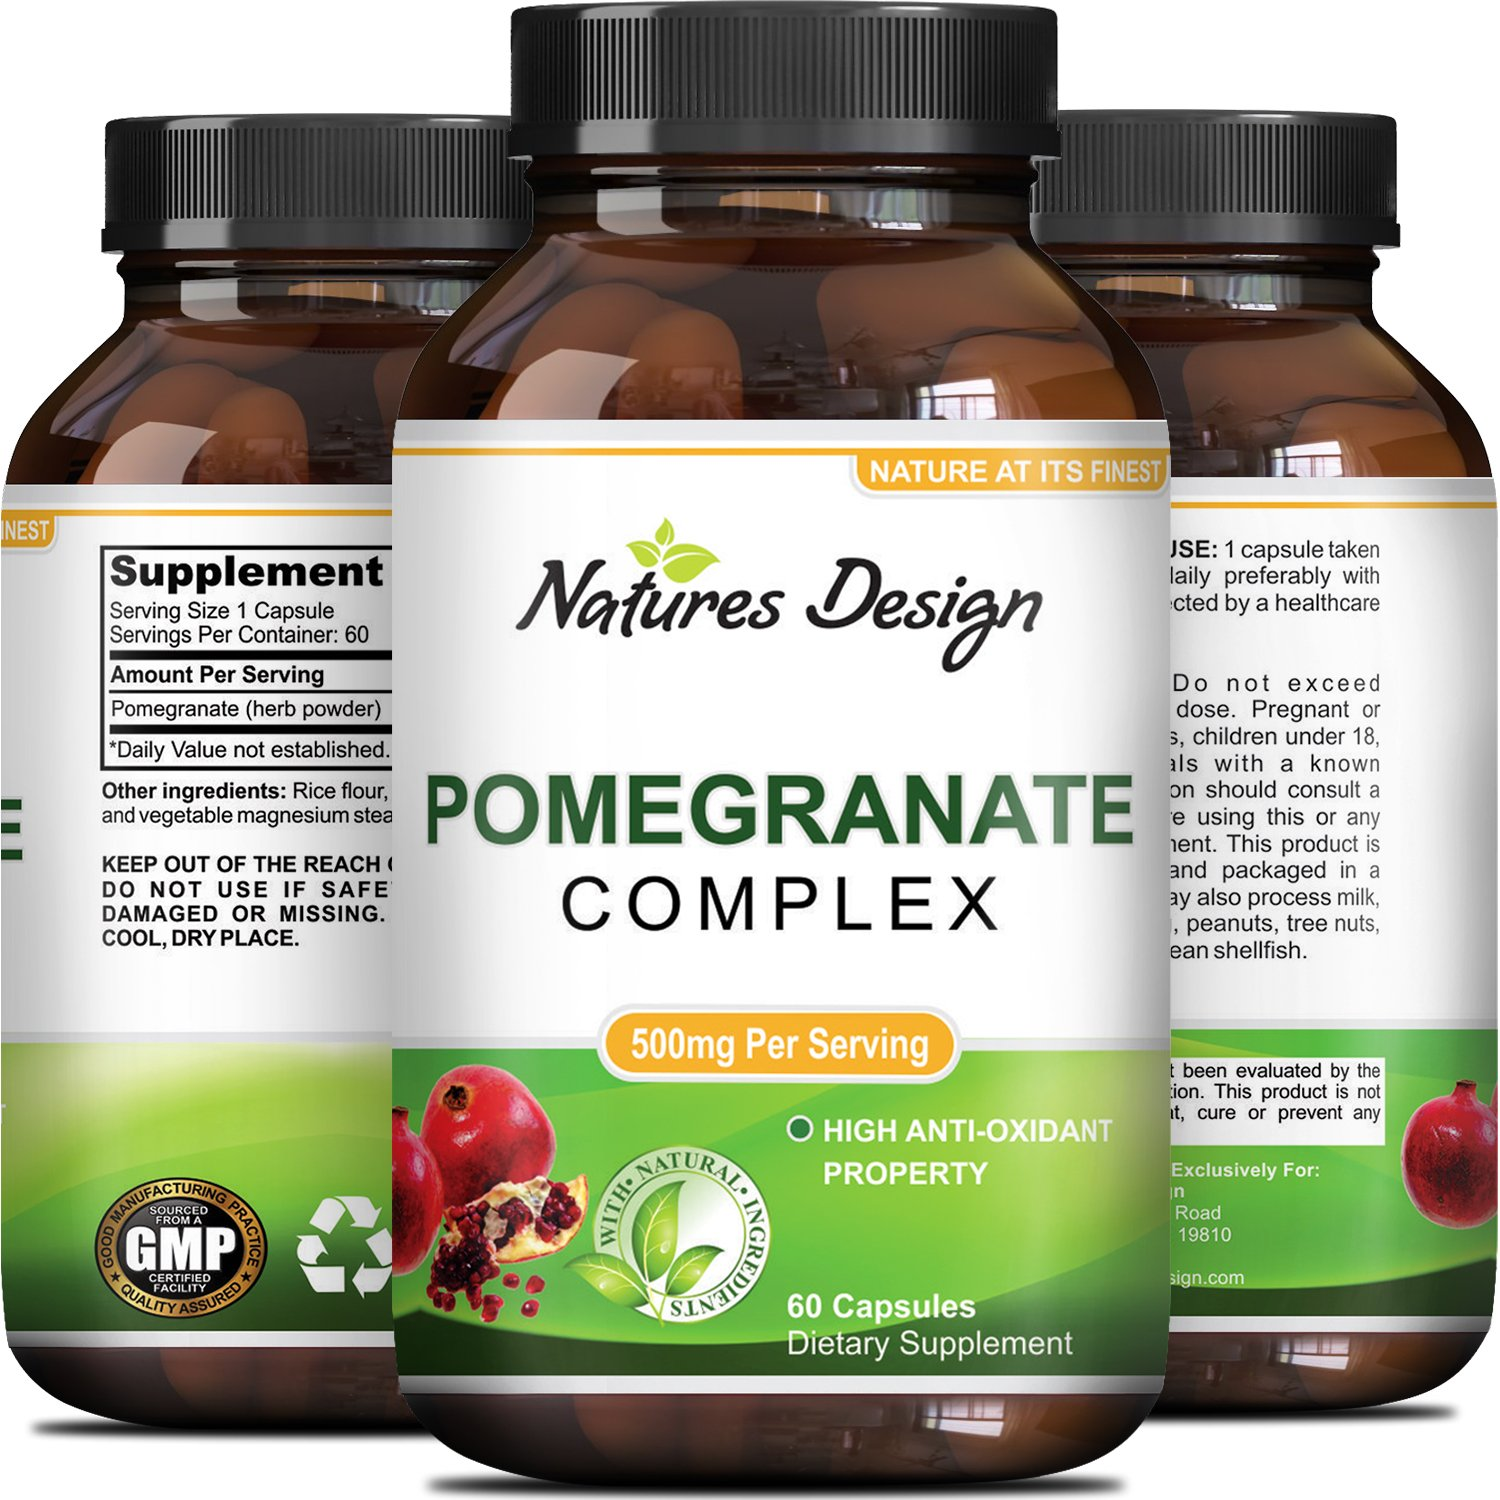 Natural & Pure Pomegranate Supplement For Women & Men - Powerful Antioxidant Pills + Immune System Booster - Best Energy Booster Supplements + Blood Pressure Control - Pure Capsules By Natures Design